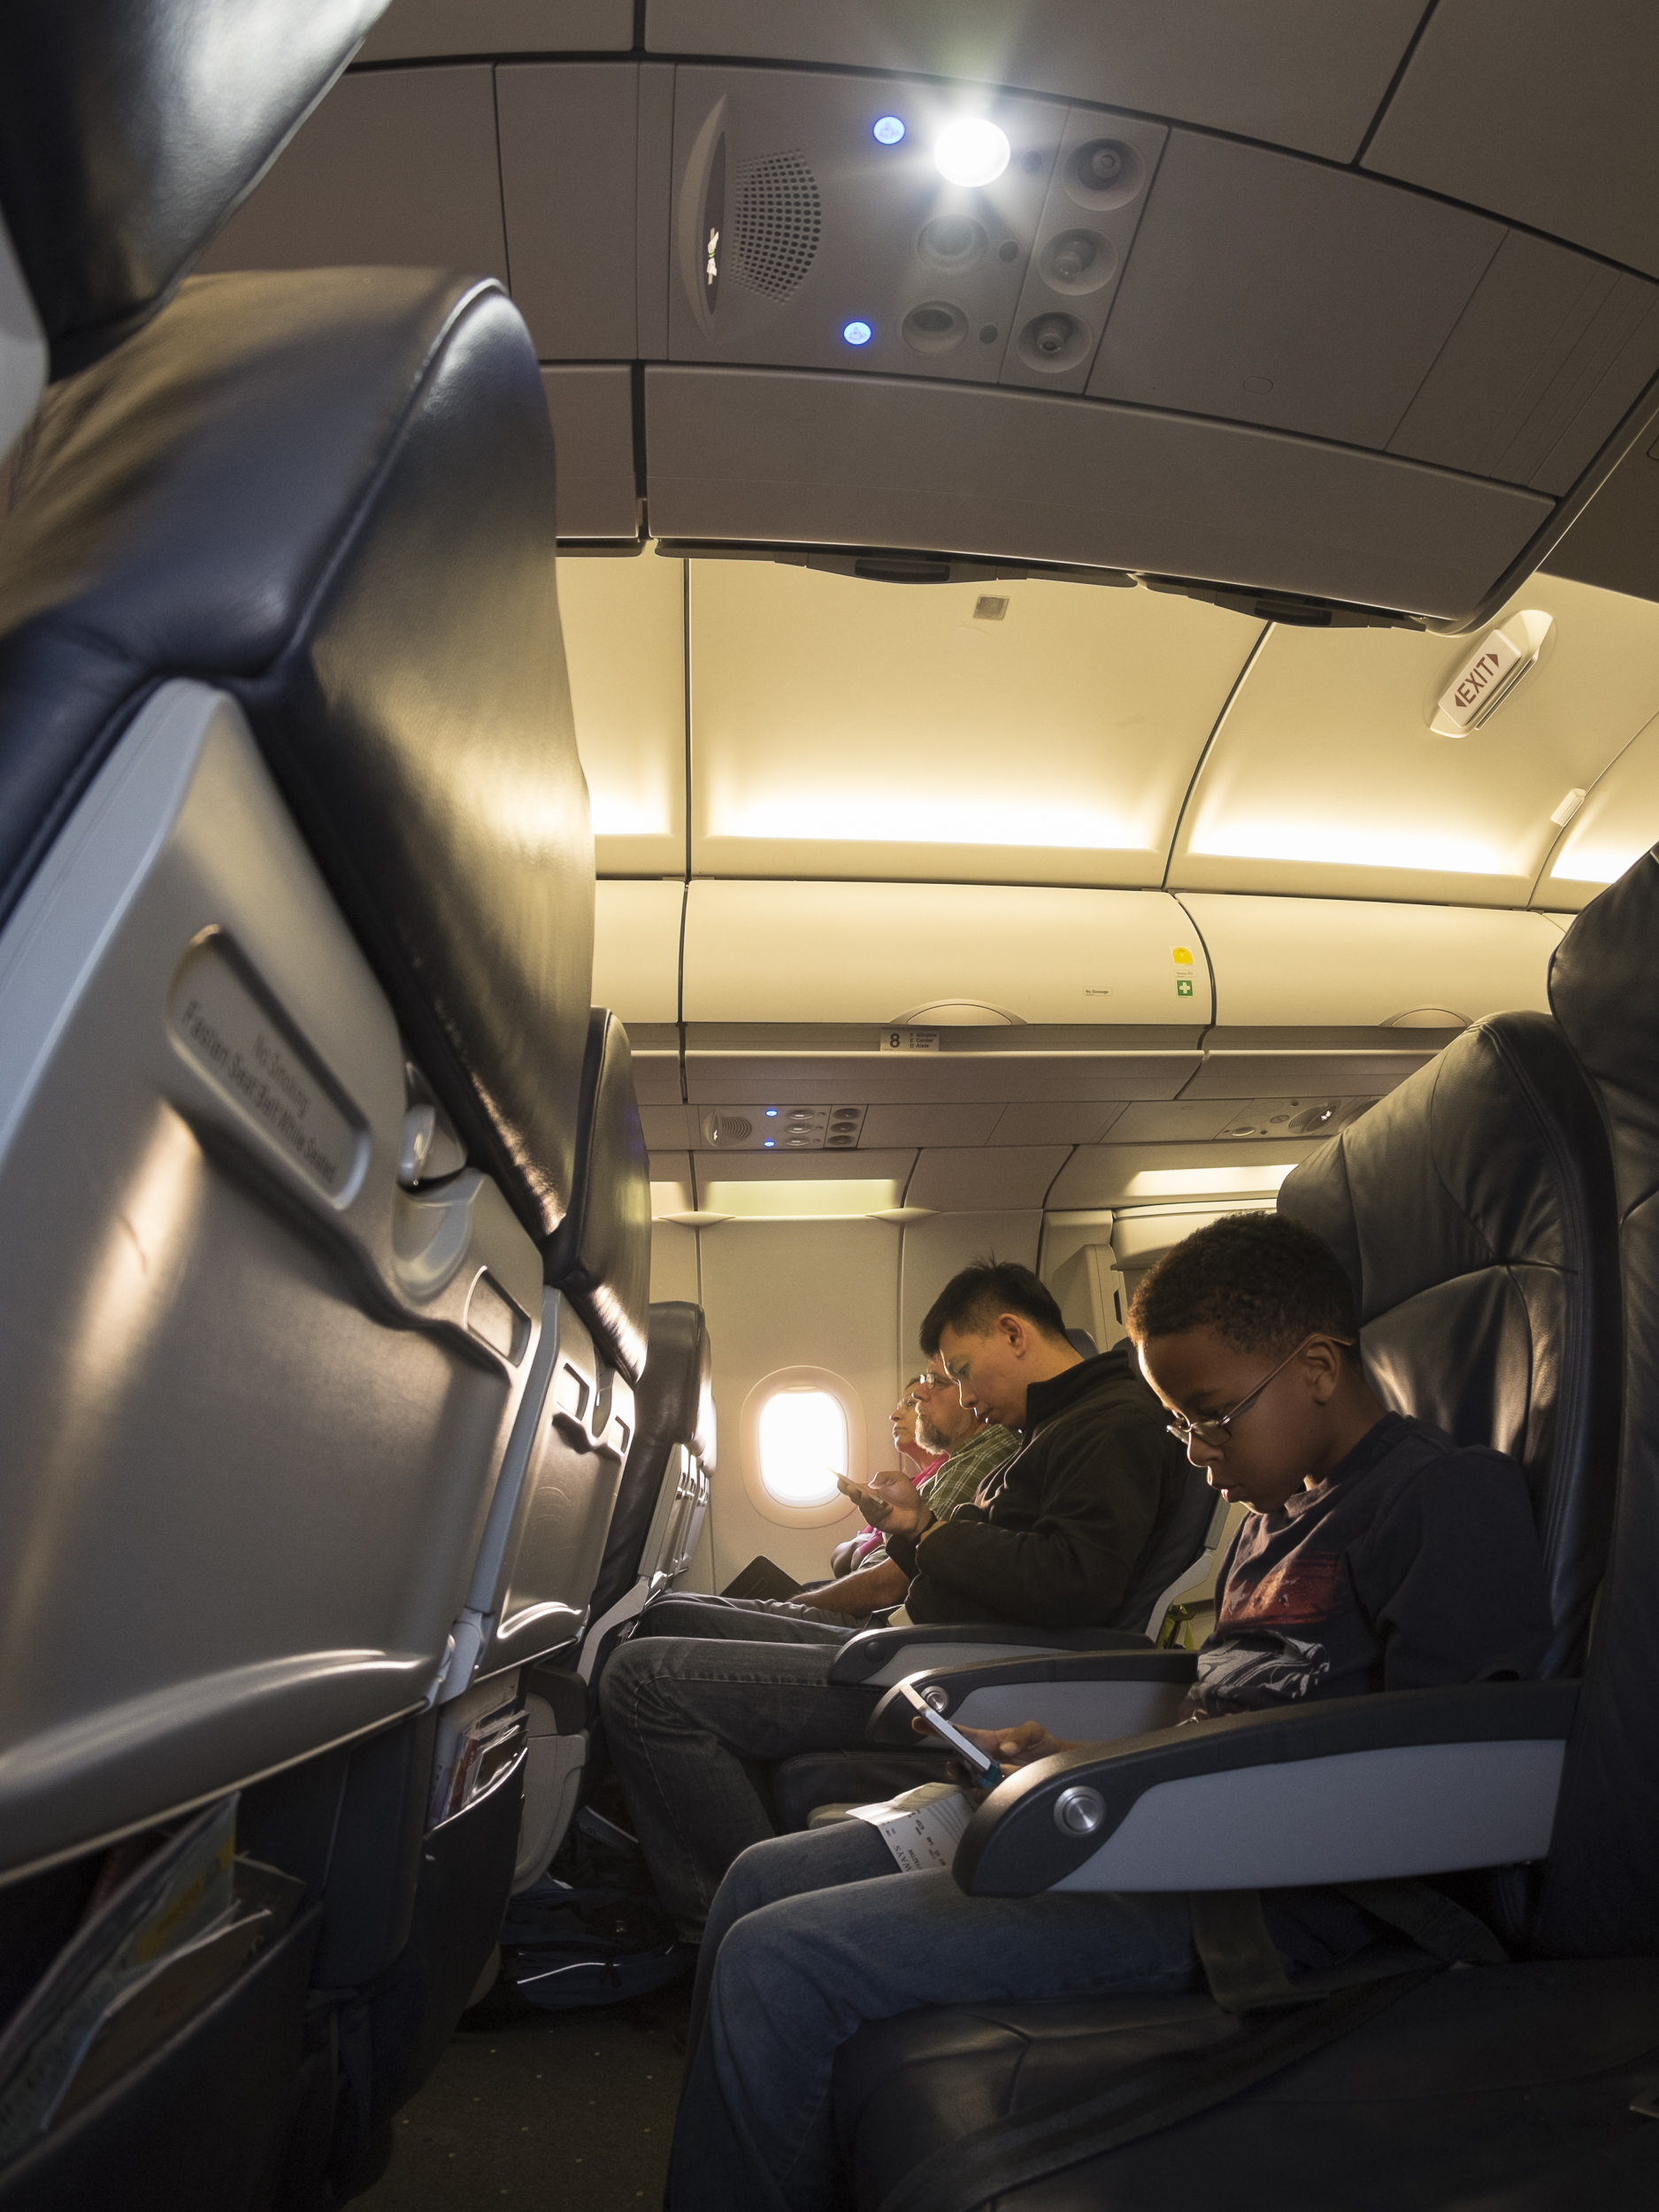 Young traveler concentrates on his mobile device while awaiting takeoff. Copyright © Kipp Baker, All rights reserved.